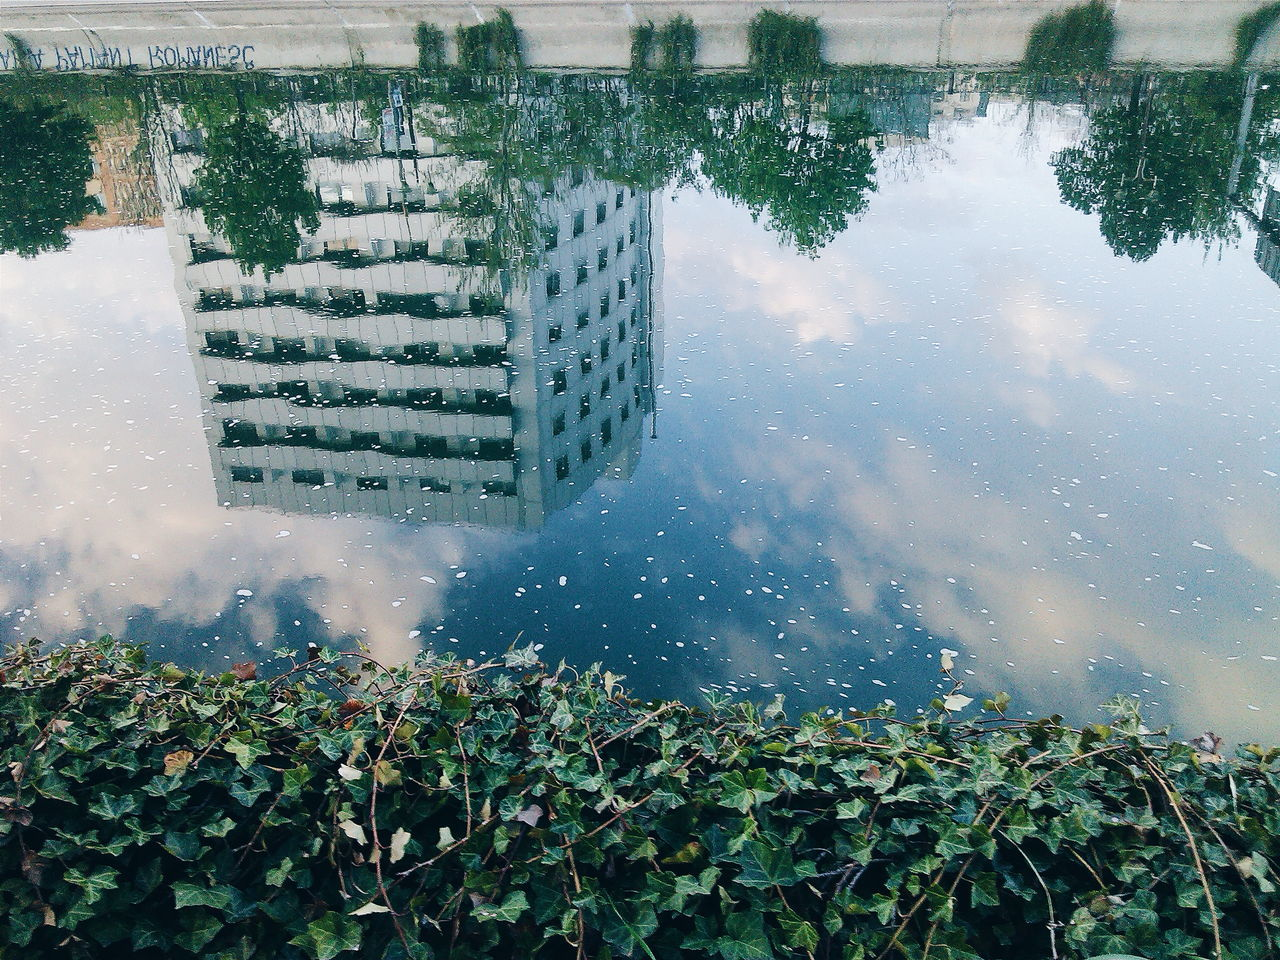 water, outdoors, day, tree, nature, plant, no people, building exterior, growth, architecture, built structure, leaf, lake, beauty in nature, puddle, city